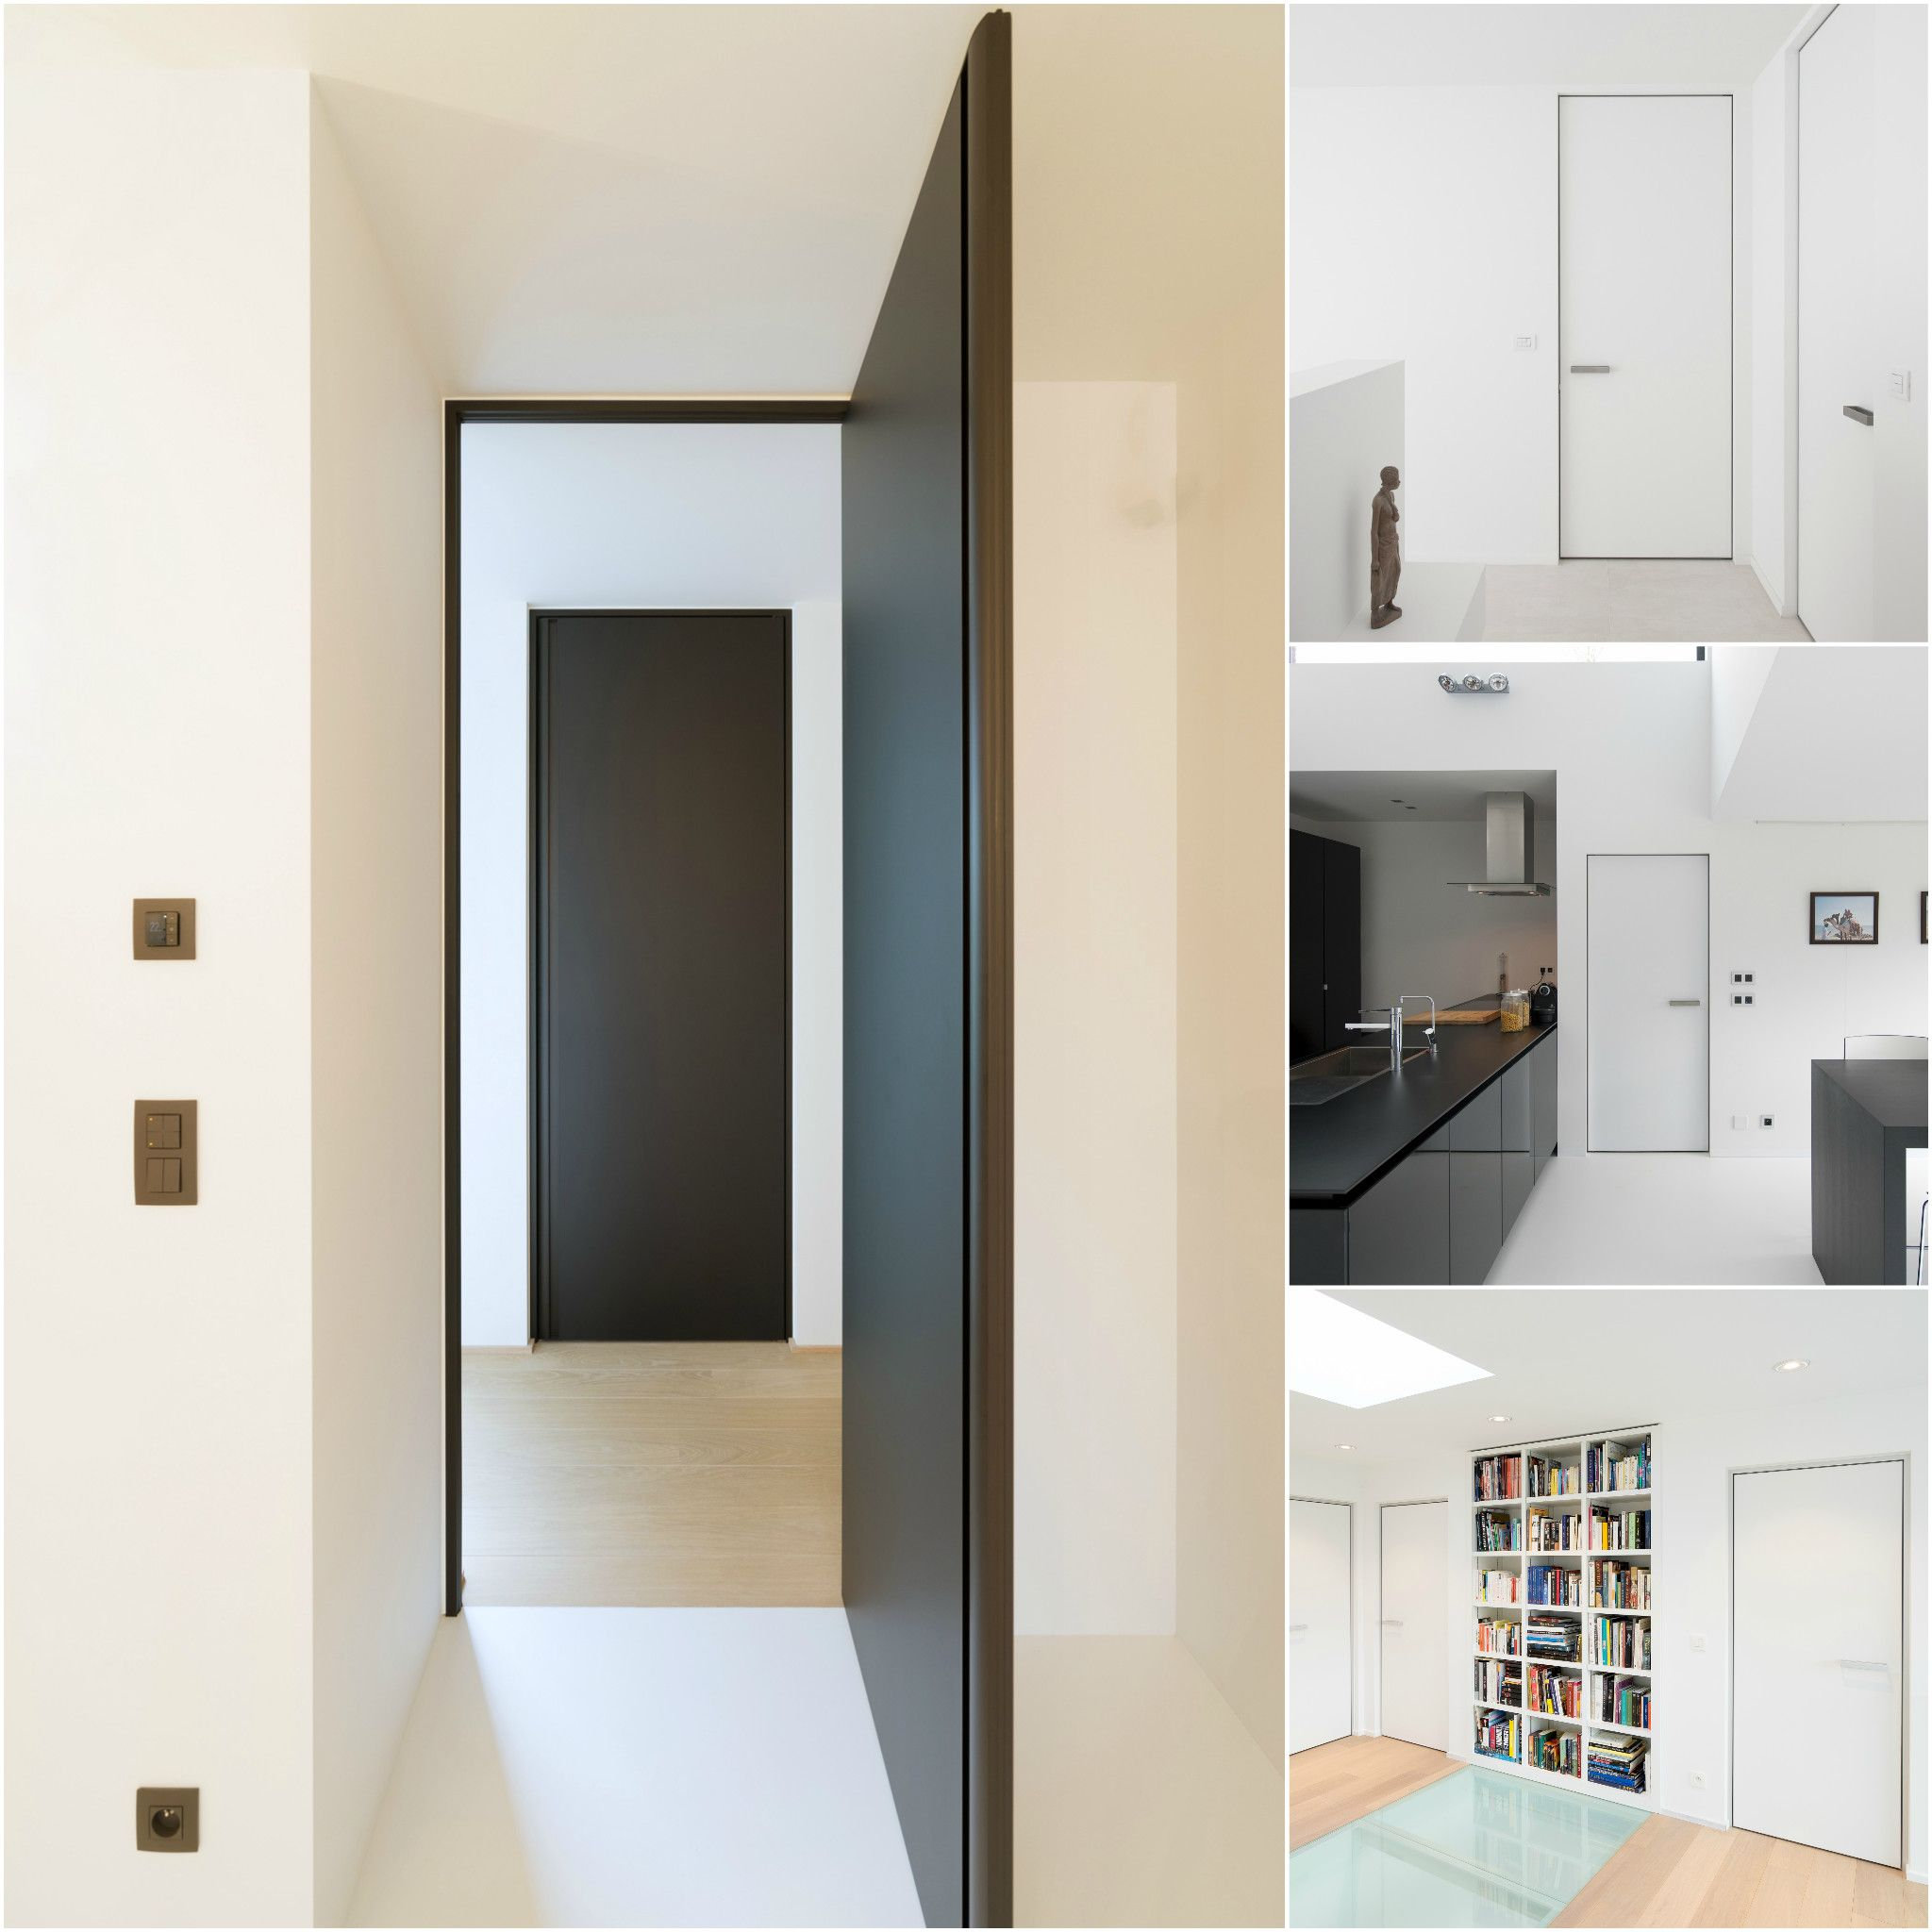 Modern interior doors with modular hinges and adjustable